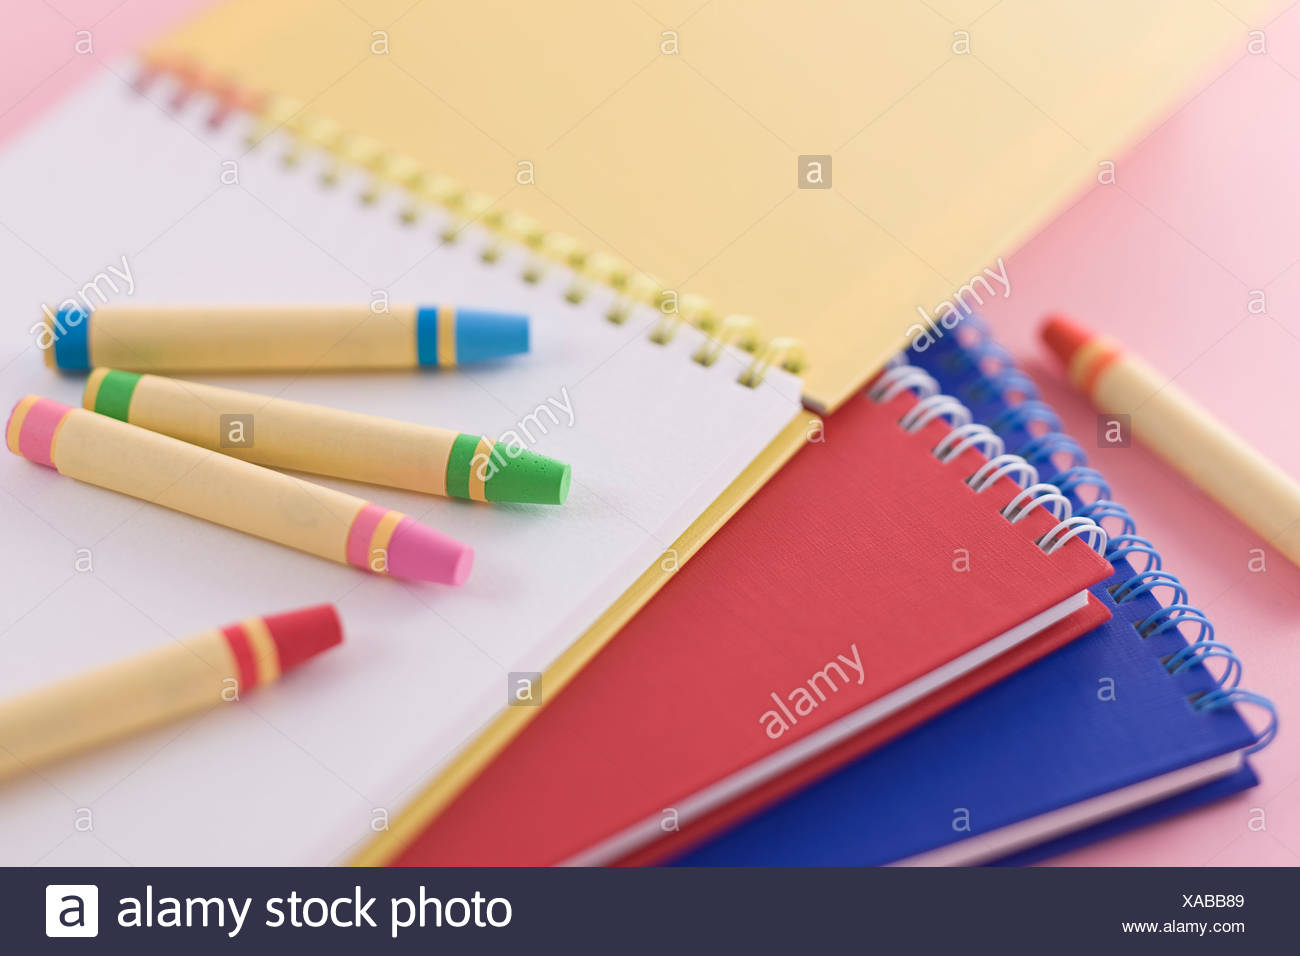 Notebook and crayon - Stock Image